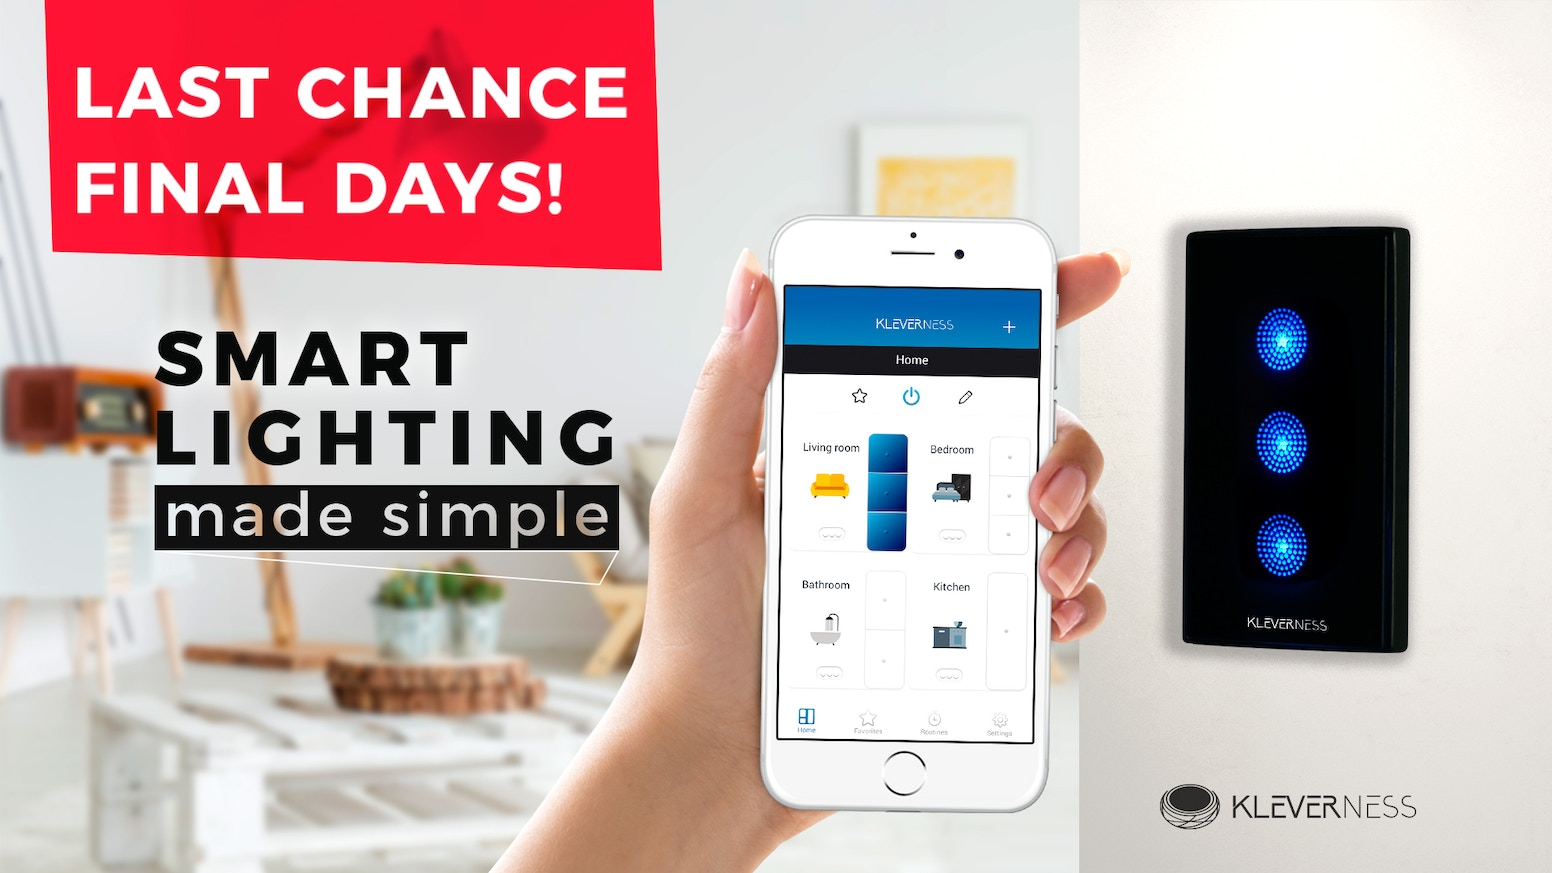 Kleverness lets you fully automate your home's lighting and control everything remotely with no modifications or special bulbs